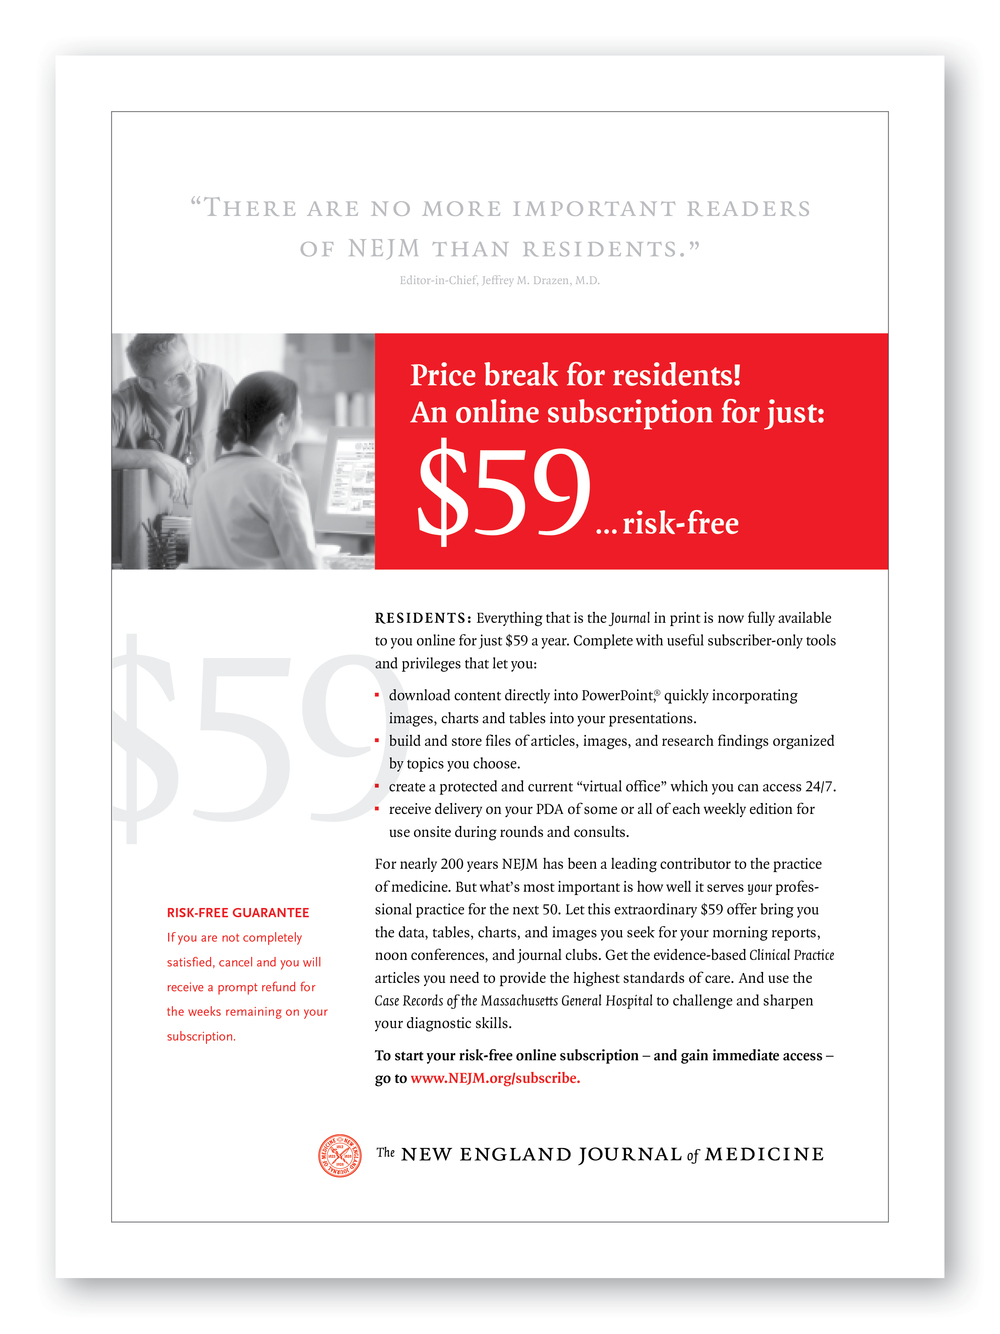 NEJM Residents Ad